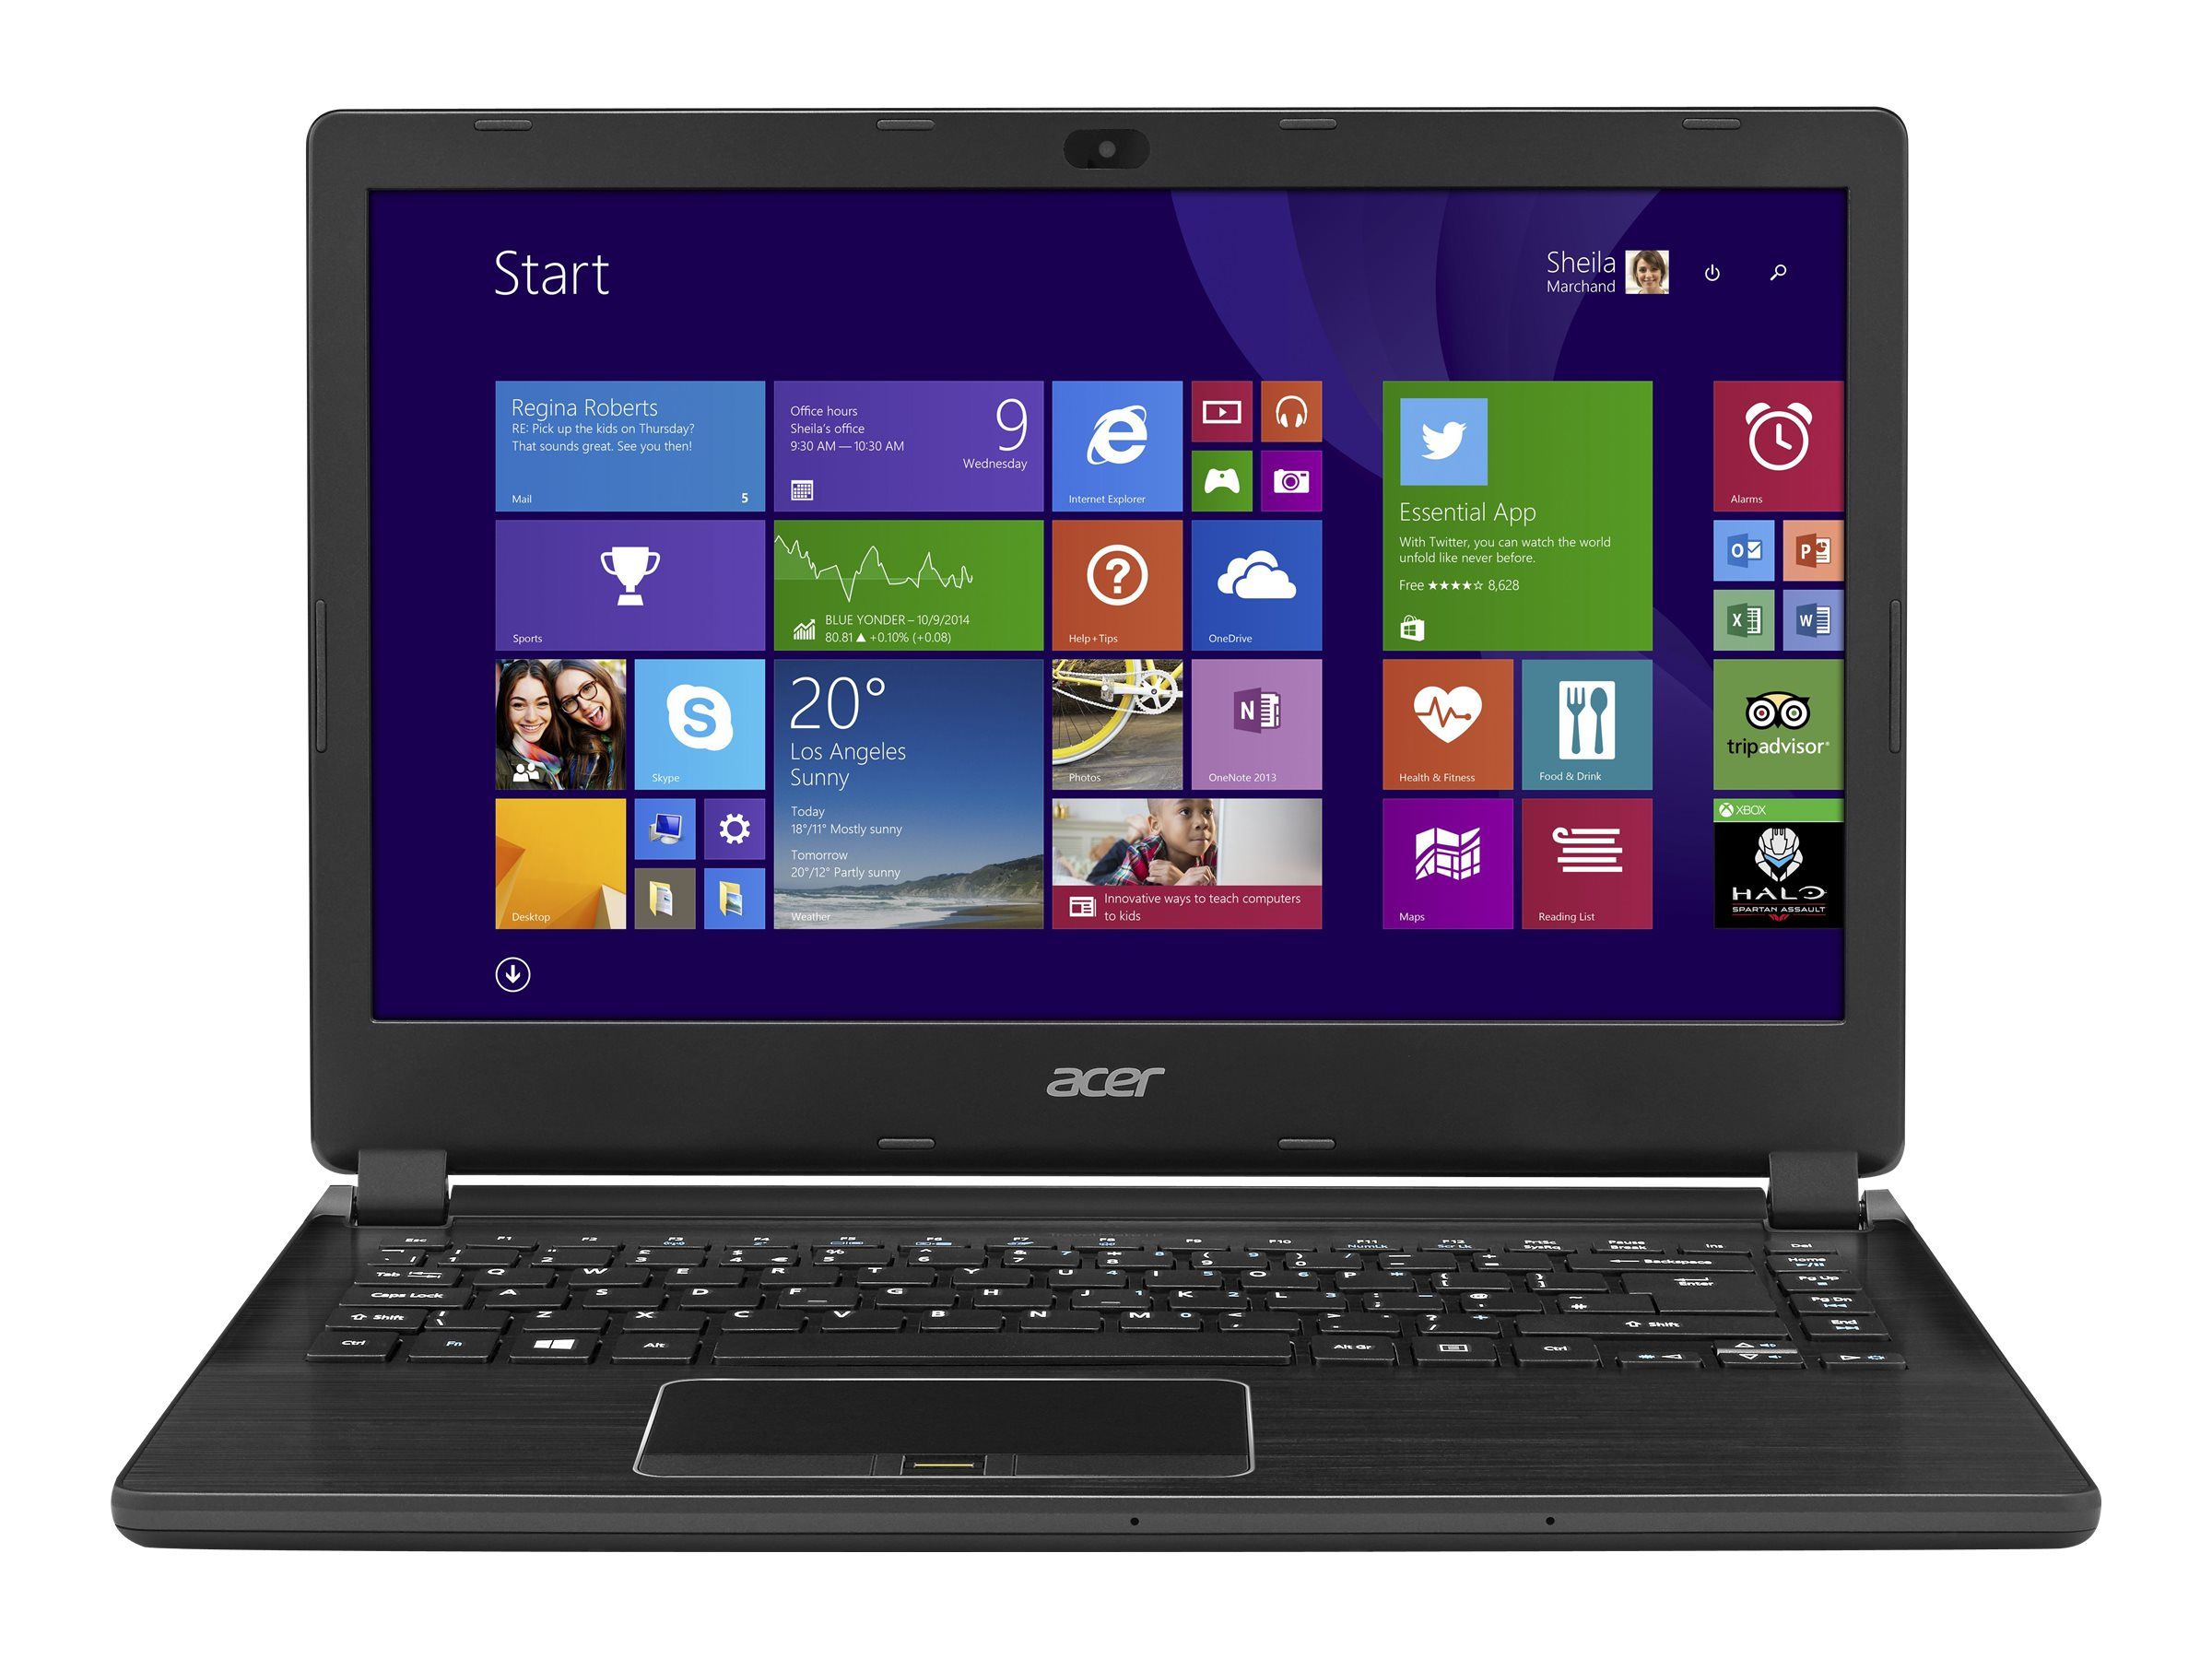 Acer NX.VCEAA.002 Image 2